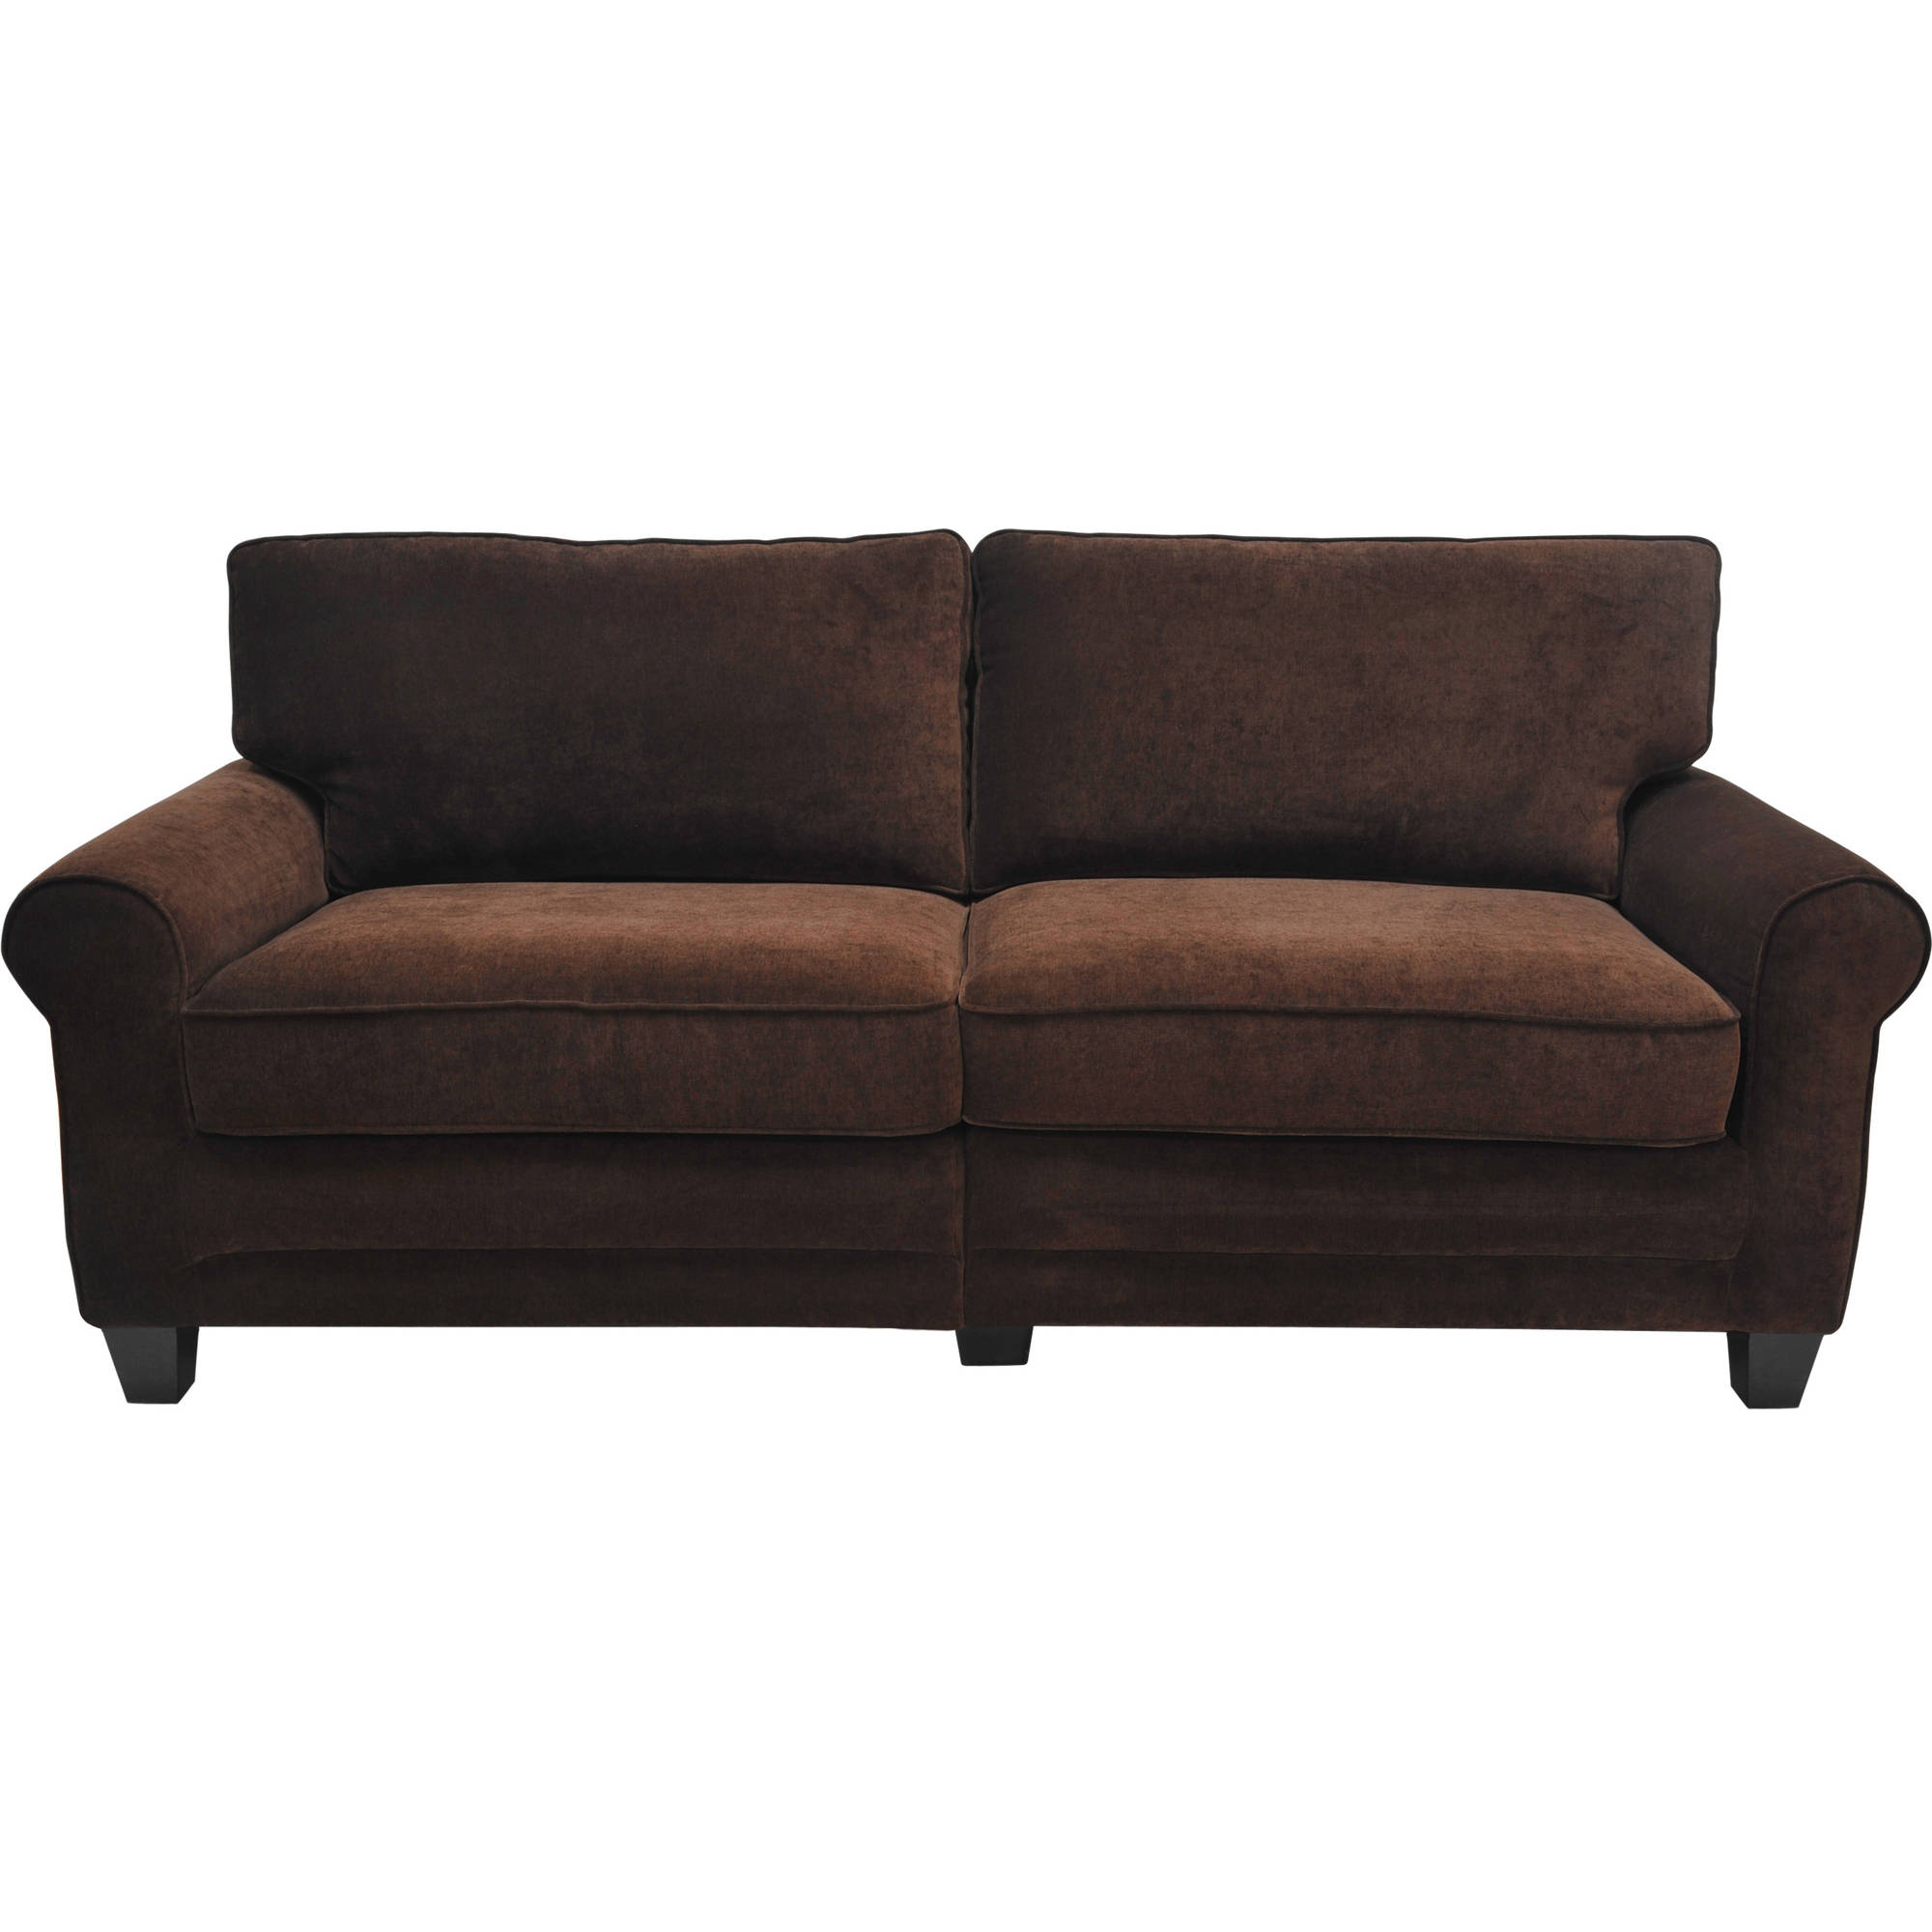 "Serta Rta Copenhagen Collection 73"" Sofa, Multiple Colors – Walmart Inside Mansfield Graphite Velvet Sofa Chairs (Image 15 of 20)"